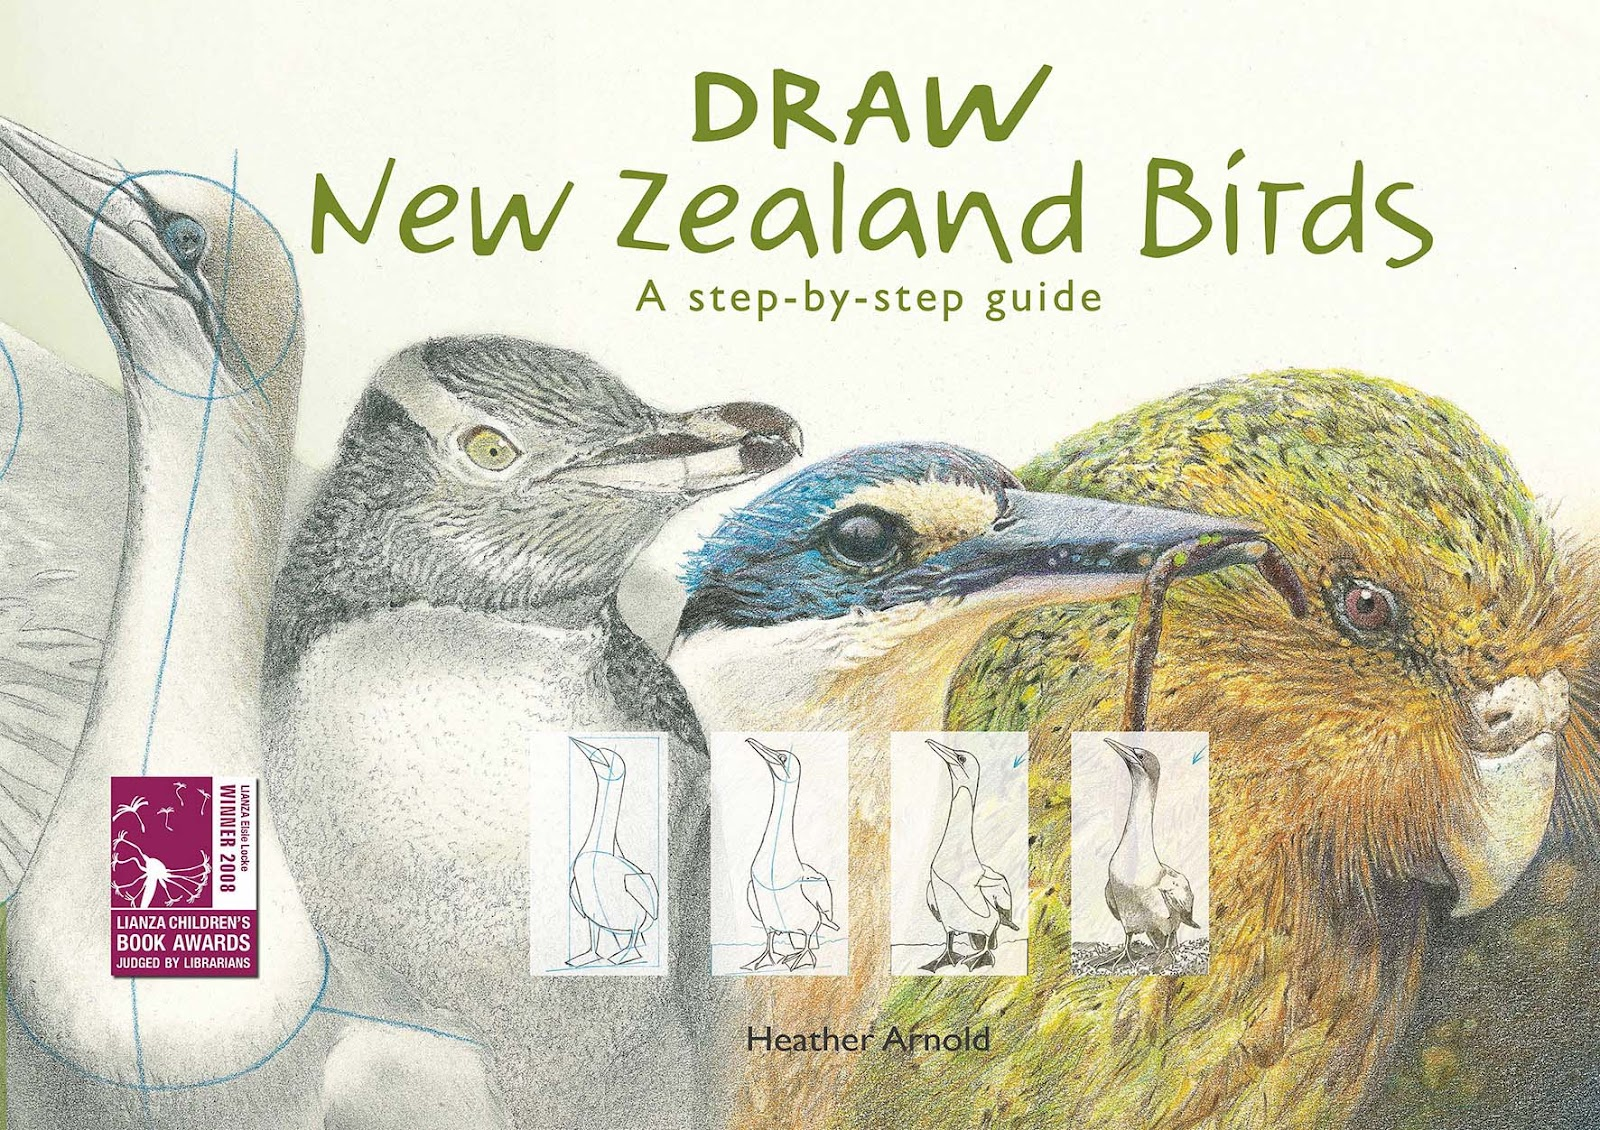 Draw New Zealand Birds_Cover3_2014.jpg